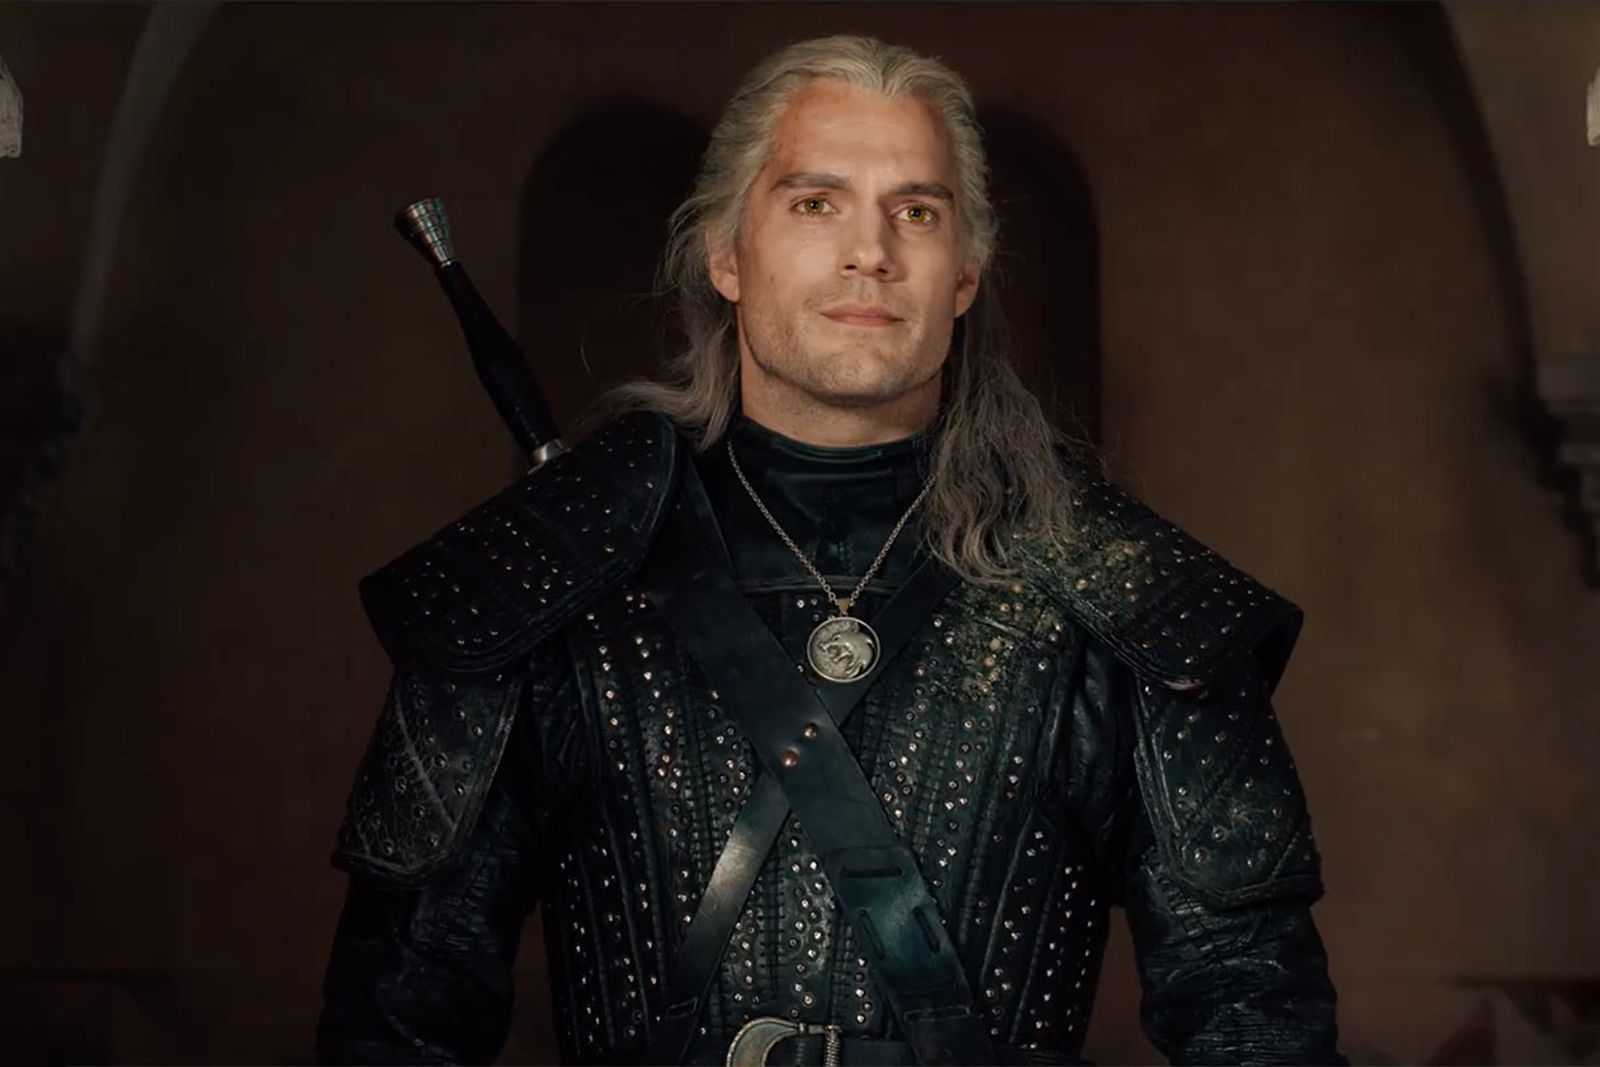 Henry Cavill as 'The Witcher'